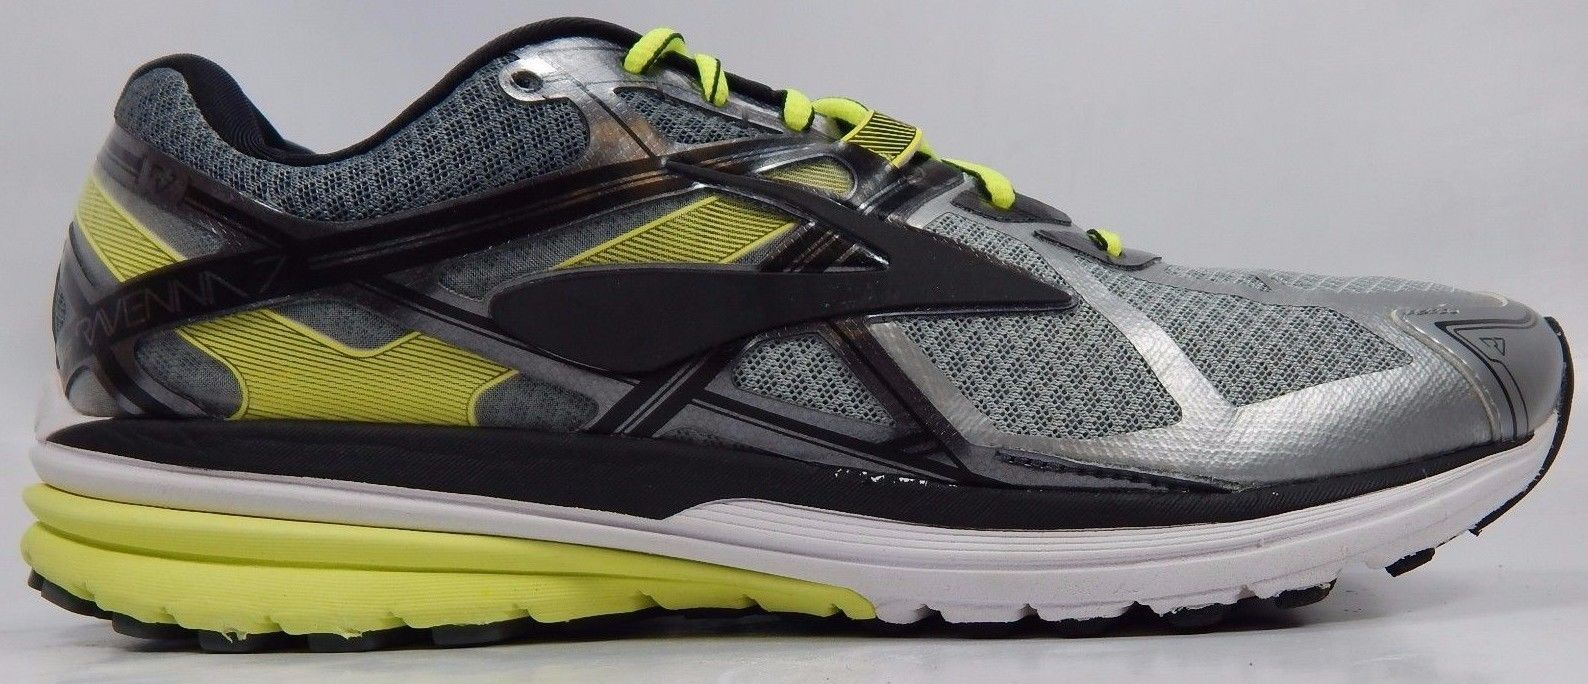 Brooks Ravenna 7 Men's Running Shoes Sz US 11.5 M (D) EU 45.5 Silver 1102171D116